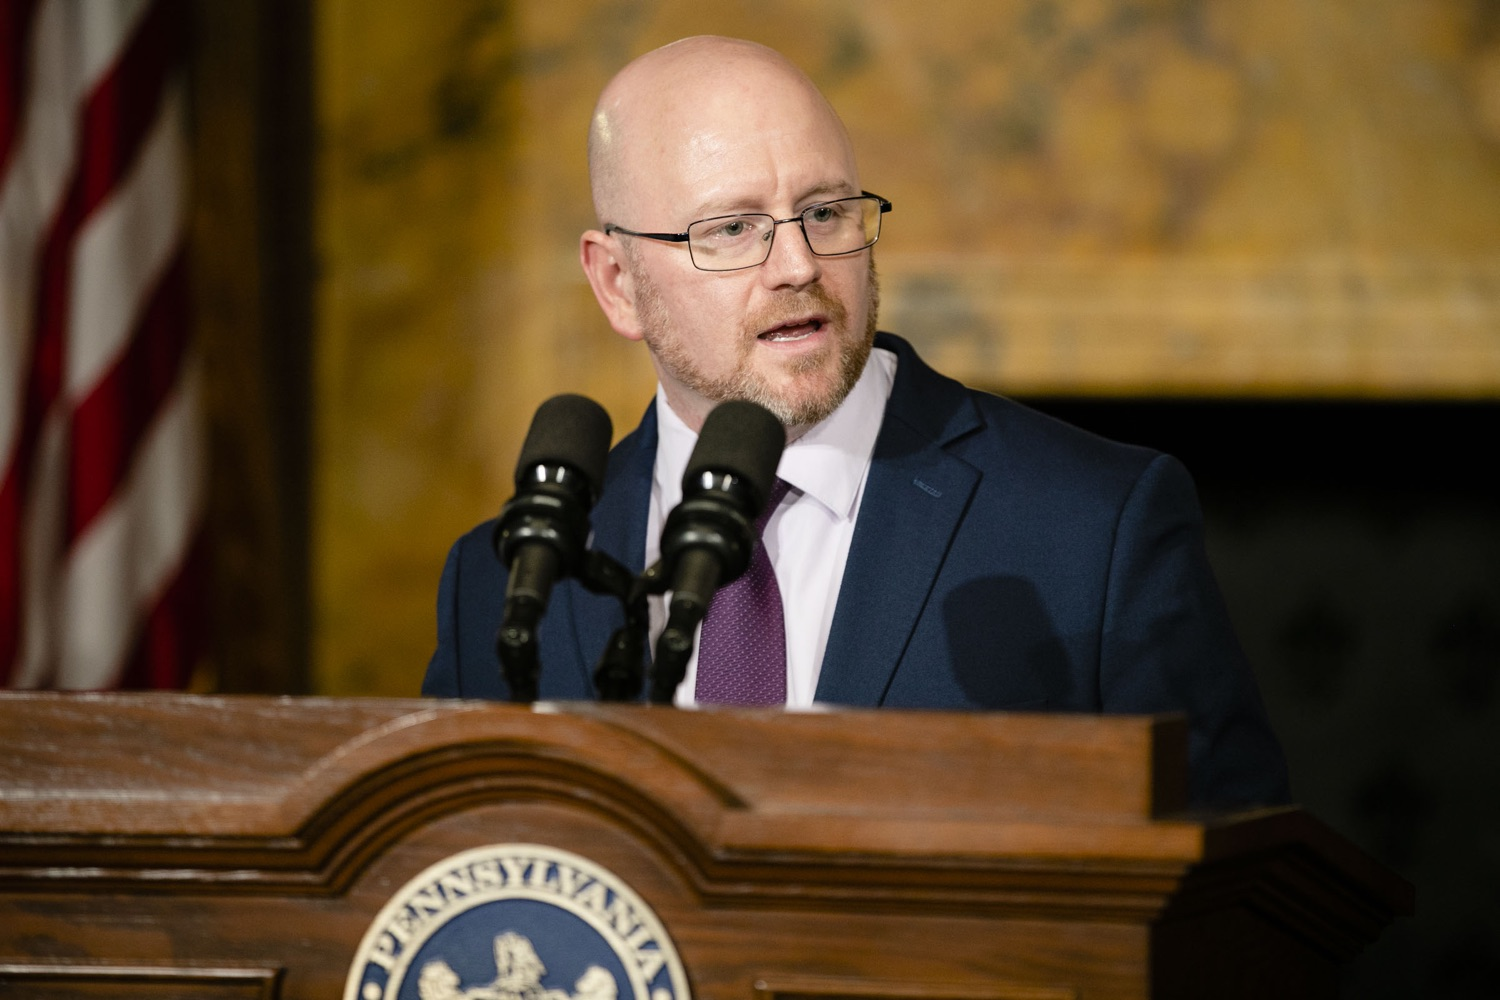 "<a href=""https://filesource.wostreaming.net/commonwealthofpa/photo/17564_GOV_aca_amb_011.jpg"" target=""_blank"">⇣ Download Photo<br></a>Governor Tom Wolf and Insurance Commissioner Jessica Altman advised Pennsylvanians that now is the time to buy health insurance on the federal exchange, healthcare.gov, as open enrollment continues for Affordable Care Act (ACA) plans through Dec. 15. Consumers have more options in Pennsylvania, and many will find they qualify for subsidies. November 7, 2019. Harrisburg, PA."